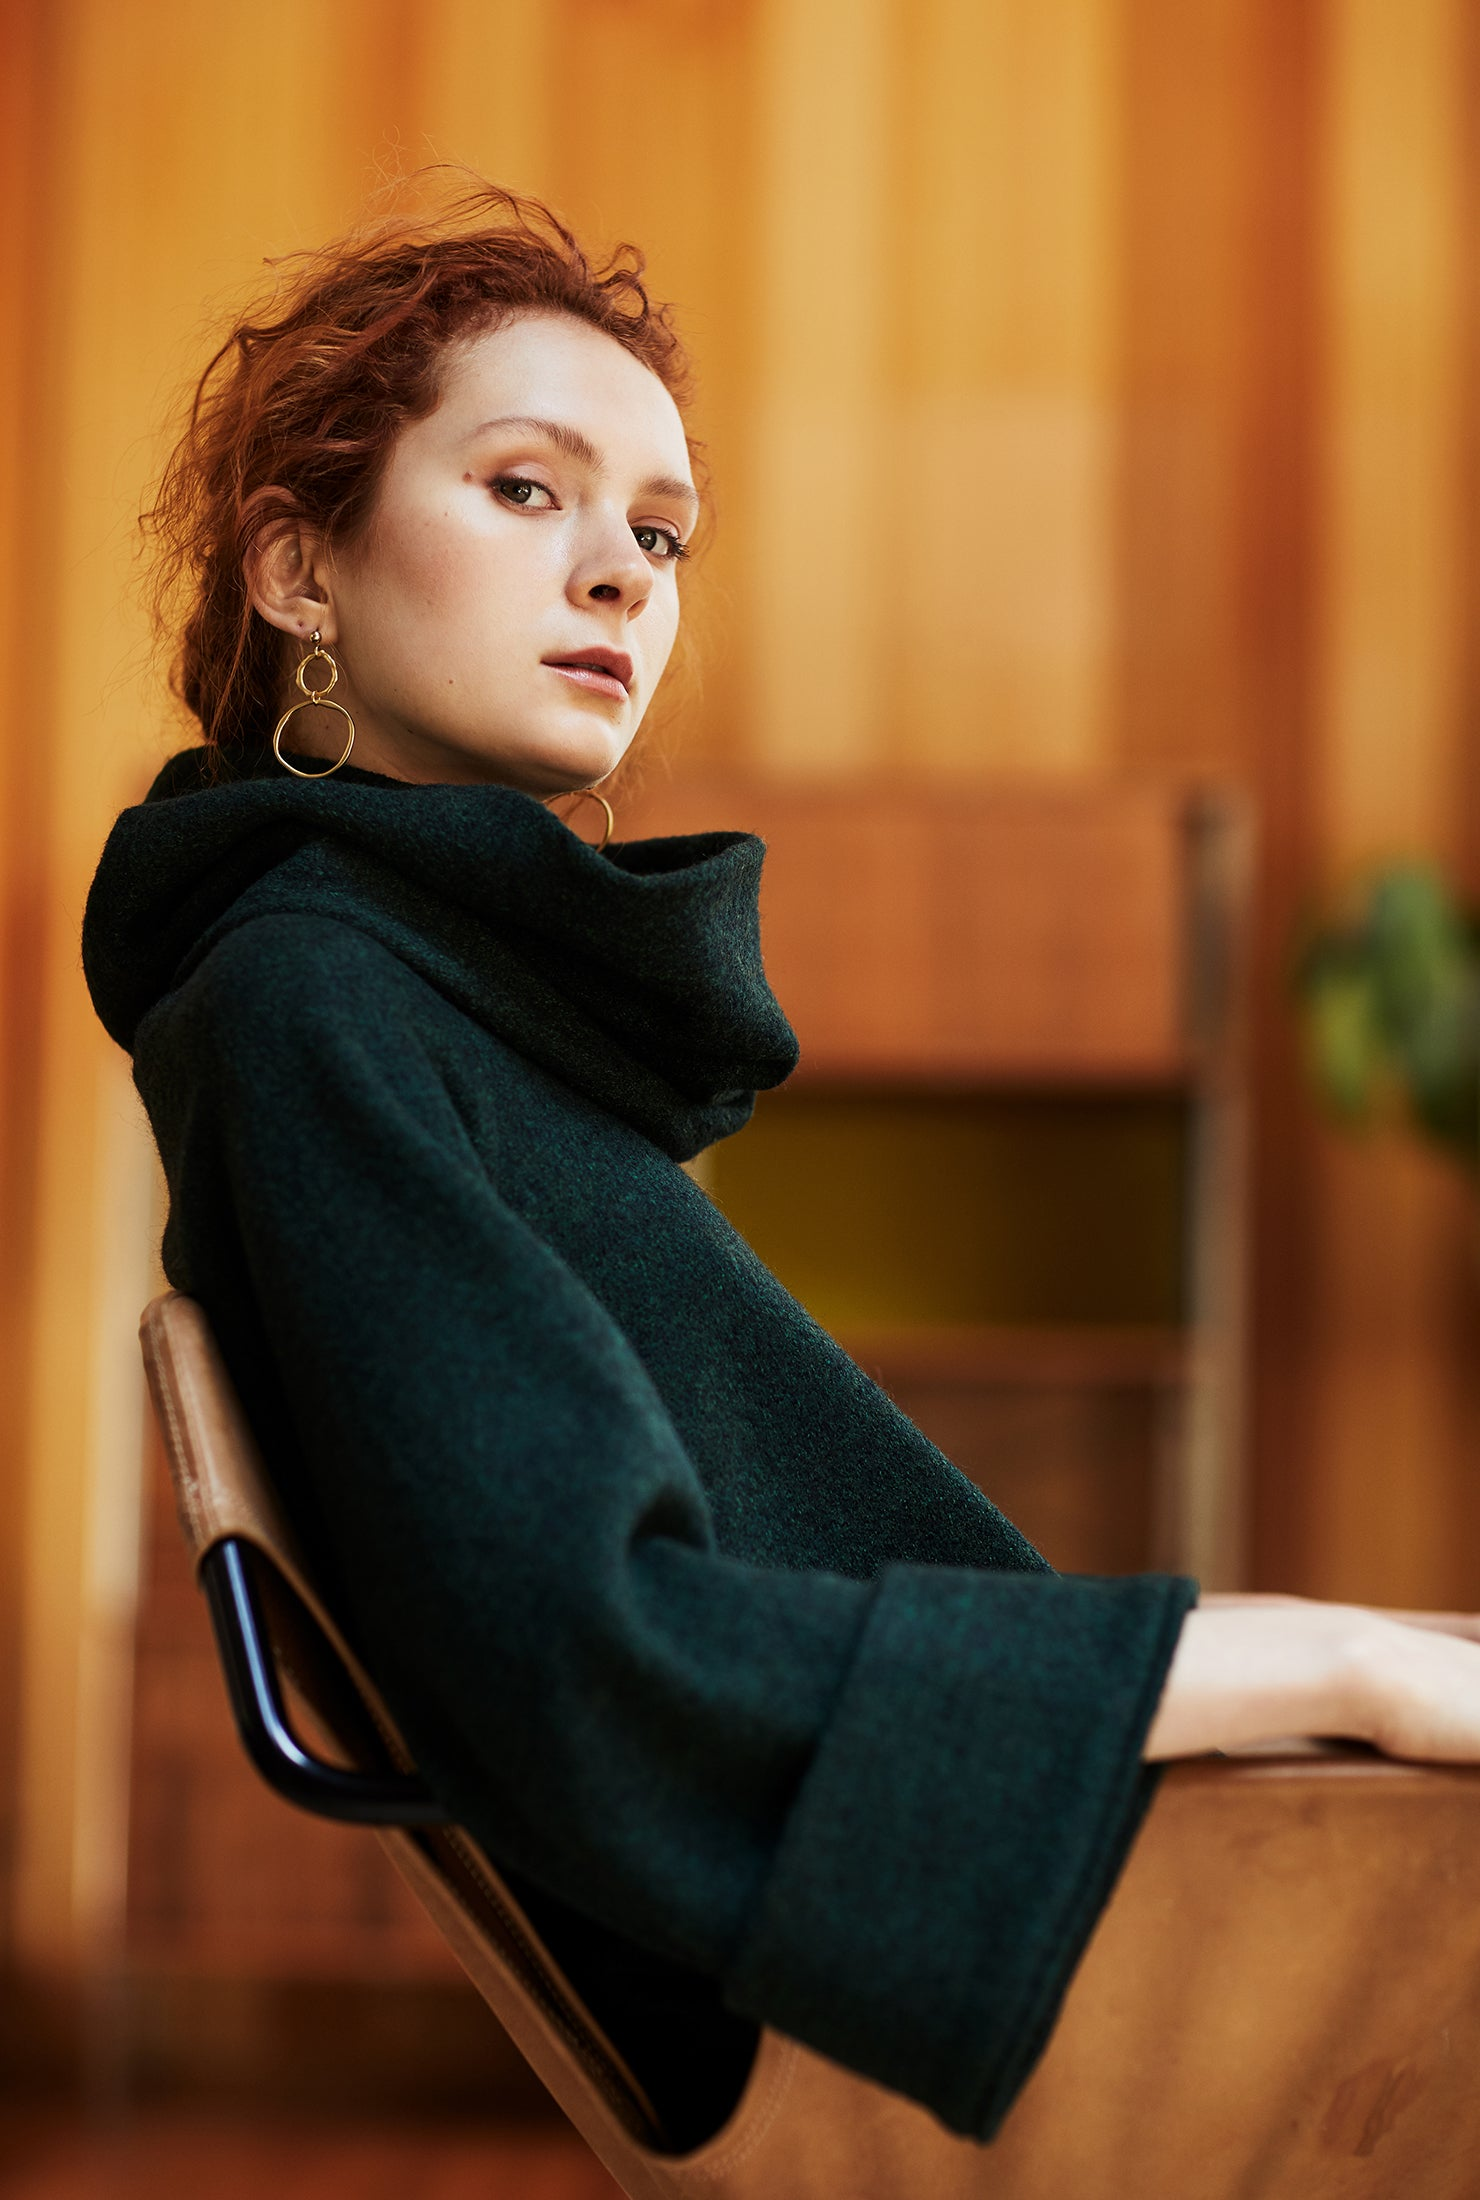 keegan AW19 Woodland Campaign Ethical Fashion Made in Melbourne Australia Green Wool Jumper